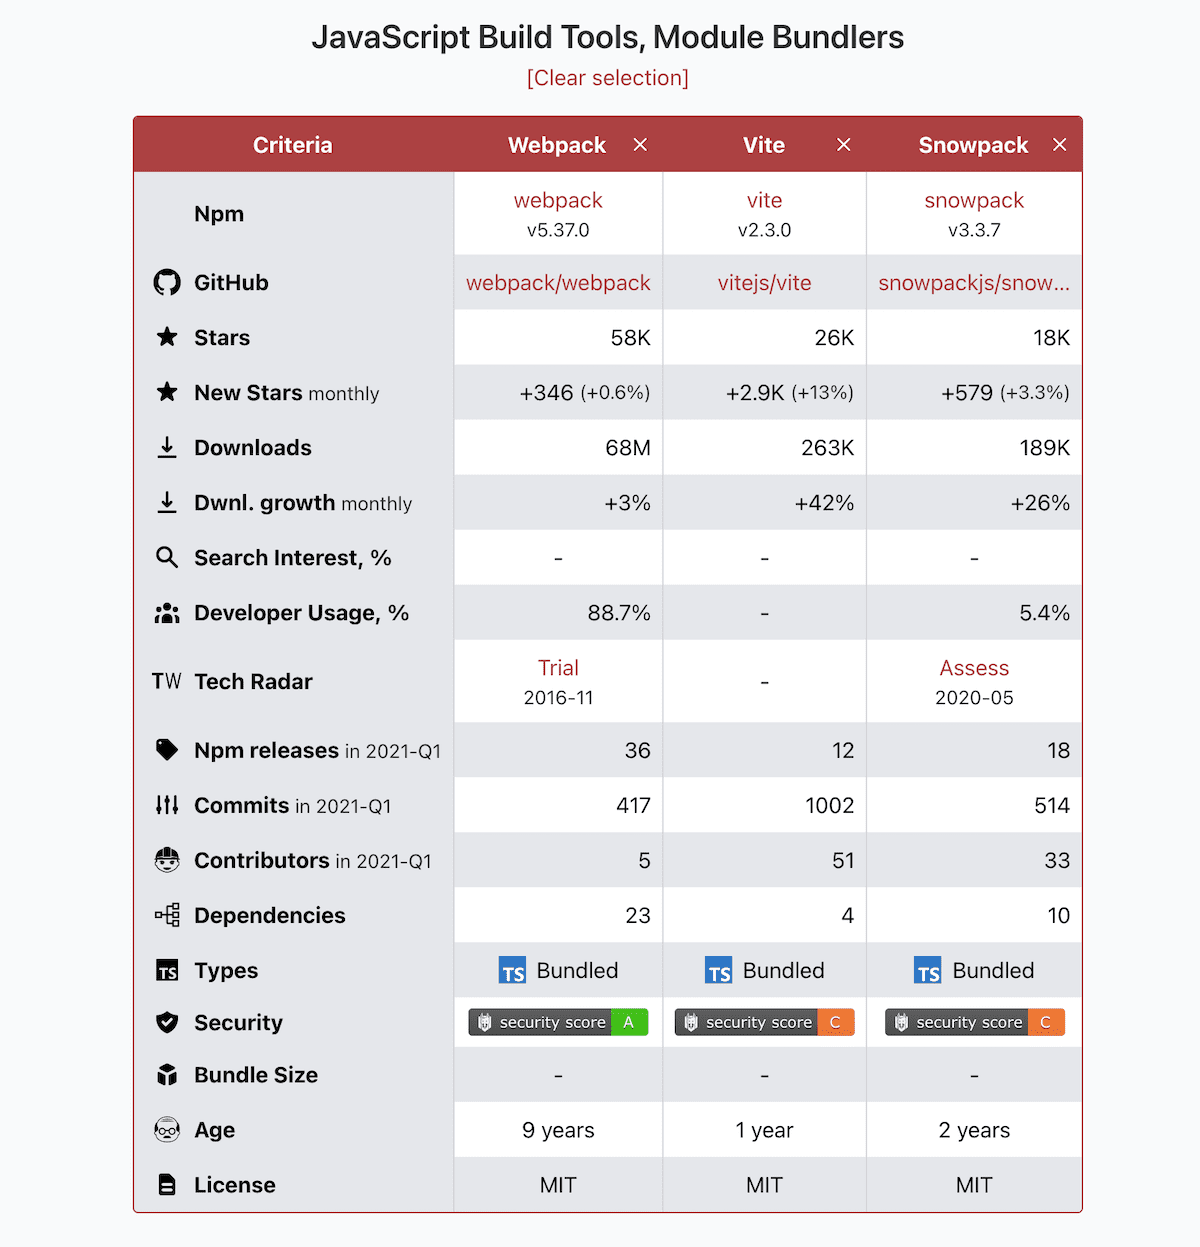 a screenshot of Moiva.io's old table view with data for Webpack, Vite and Snowpack